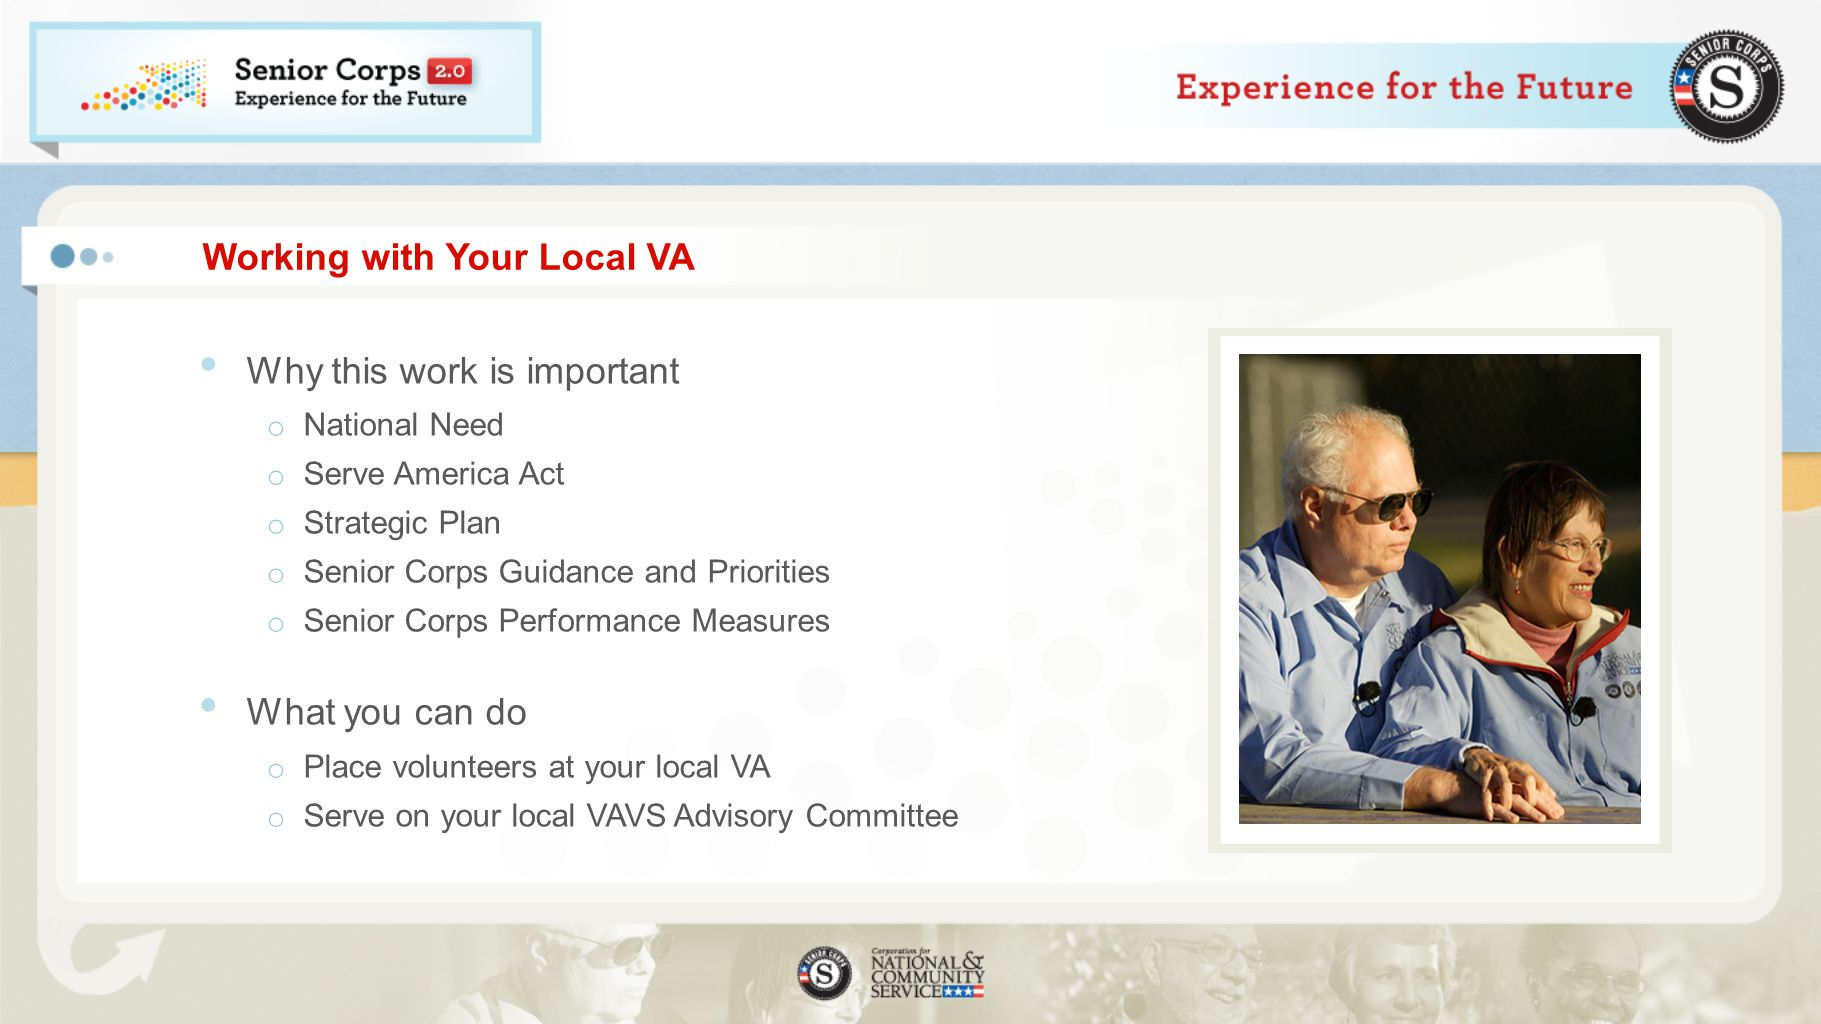 Working with Your Local VA Why this work is important o National Need o Serve America Act o Strategic Plan o Senior Corps Guidance and Priorities o Senior Corps Performance Measures What you can do o Place volunteers at your local VA o Serve on your local VAVS Advisory Committee